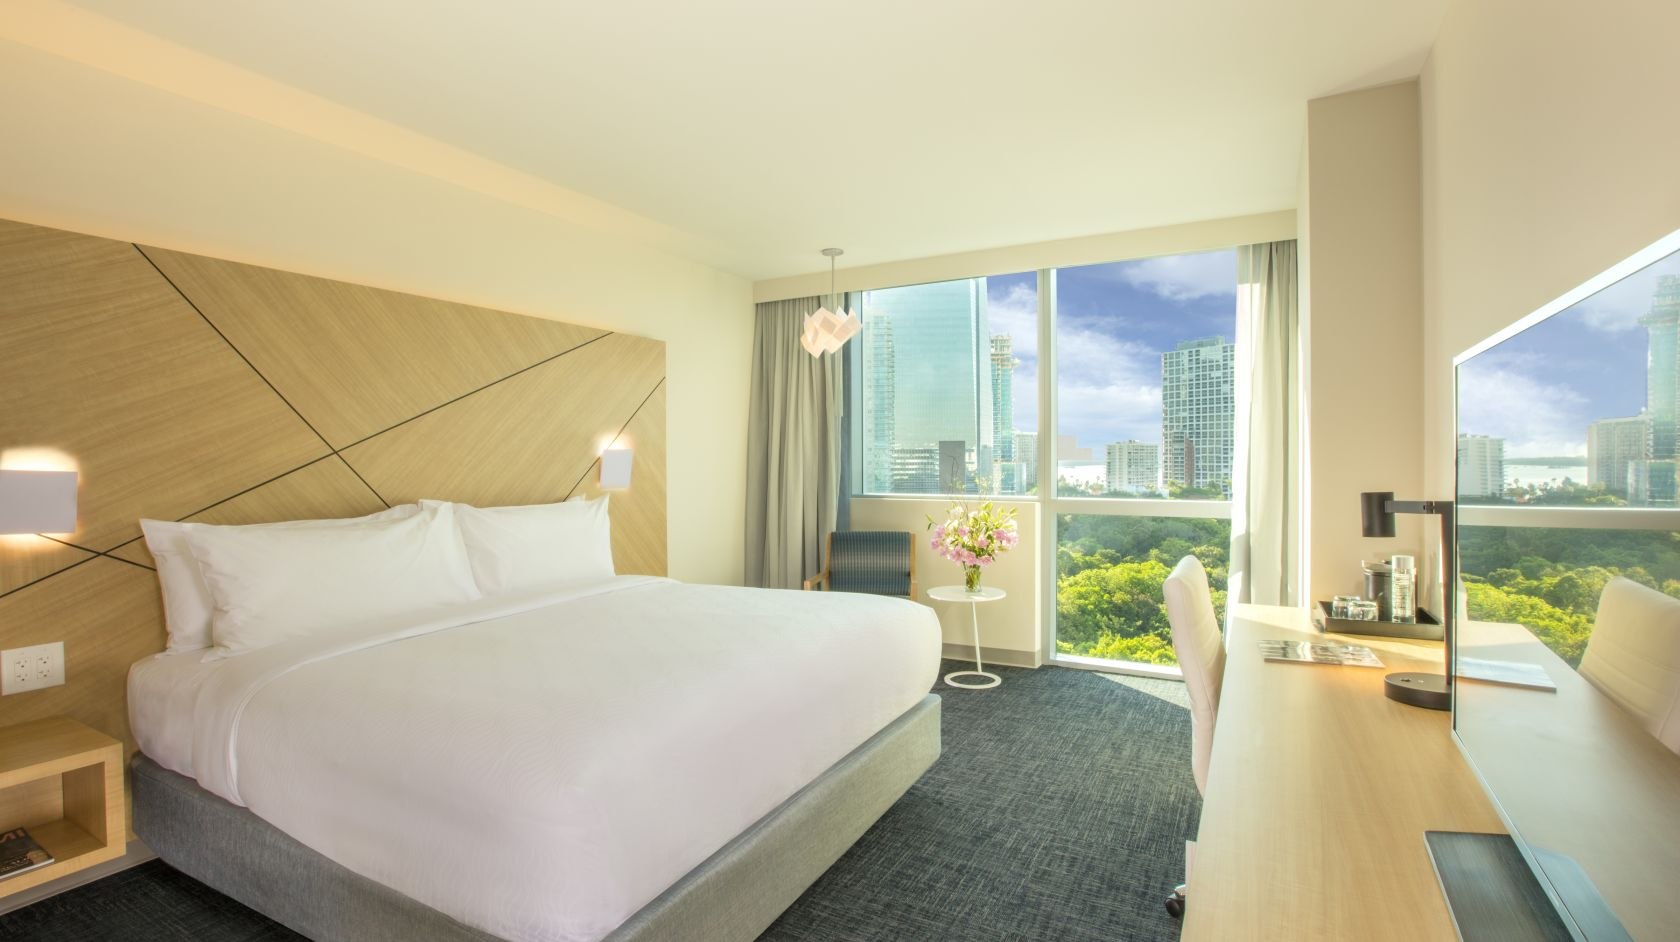 Novotel Miami Brickell accommodations